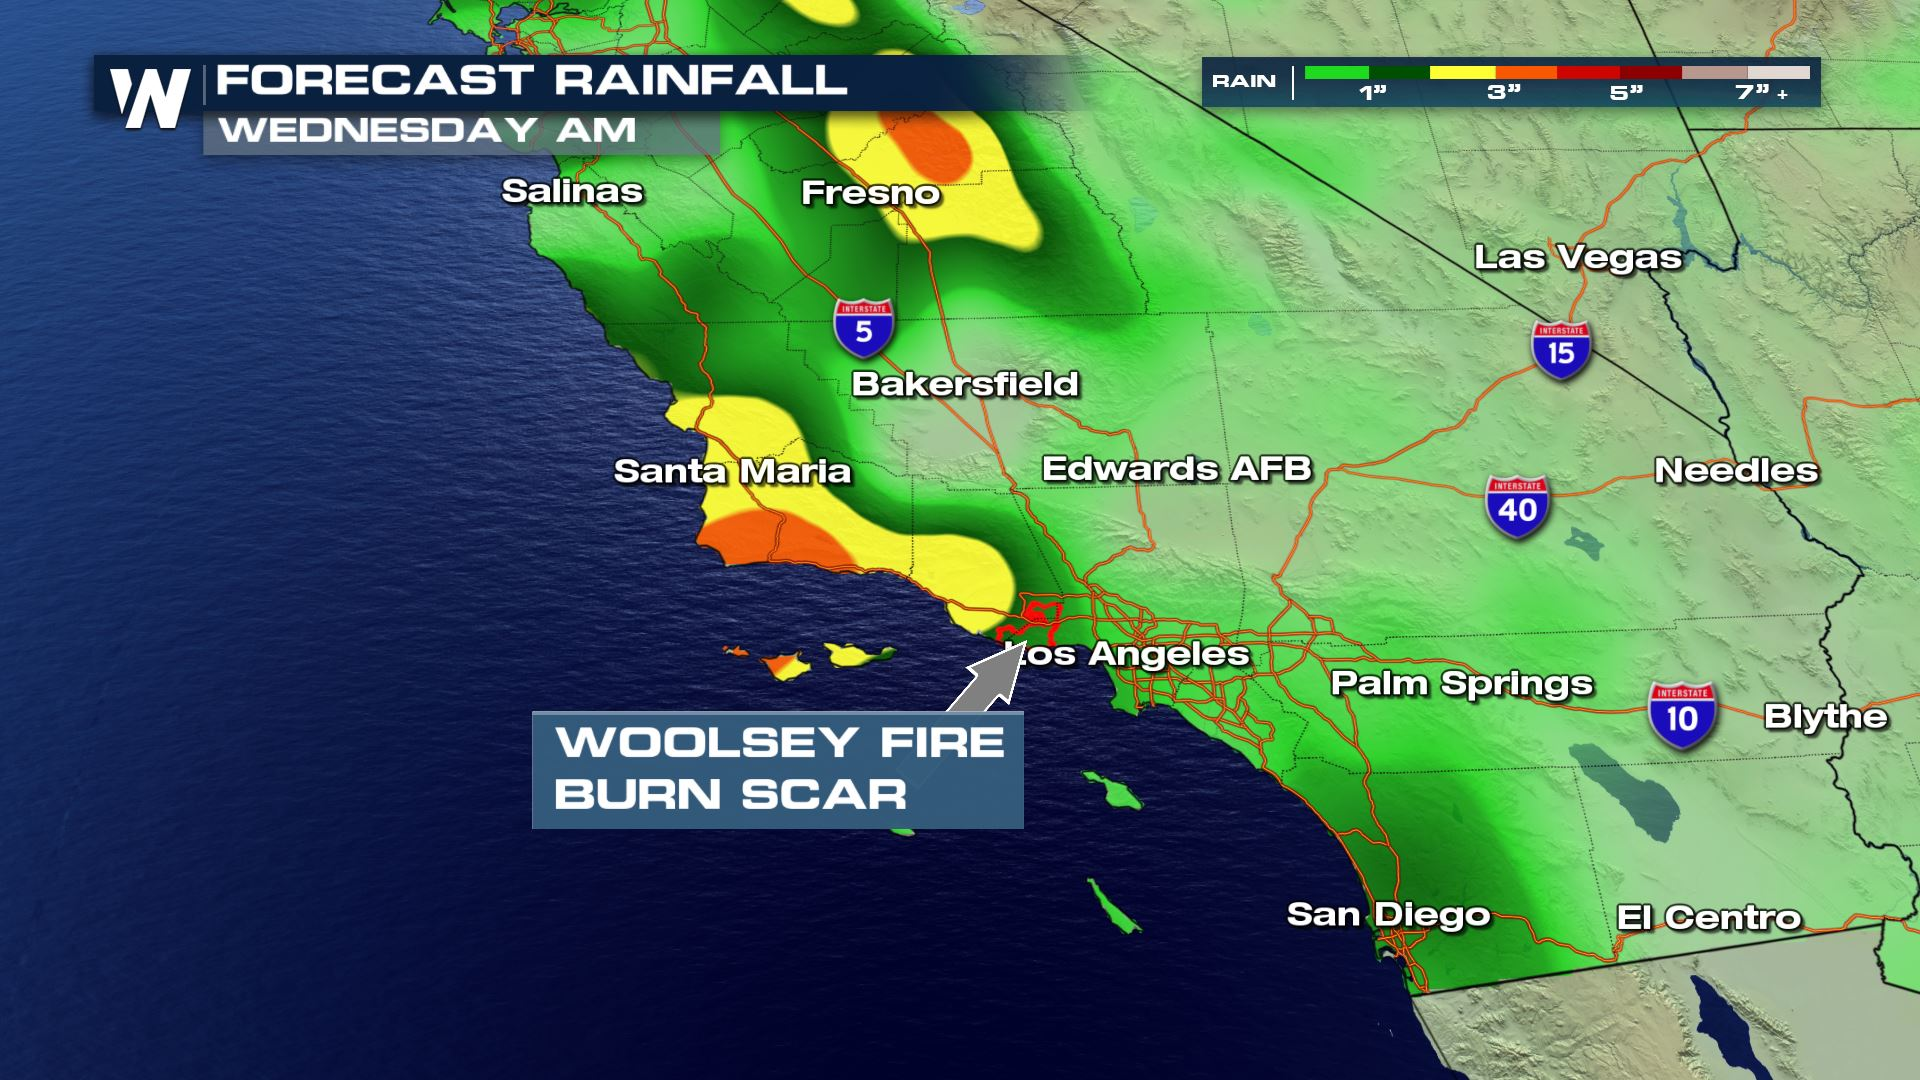 More Flooding, Debris Flows Possible in California - WeatherNation